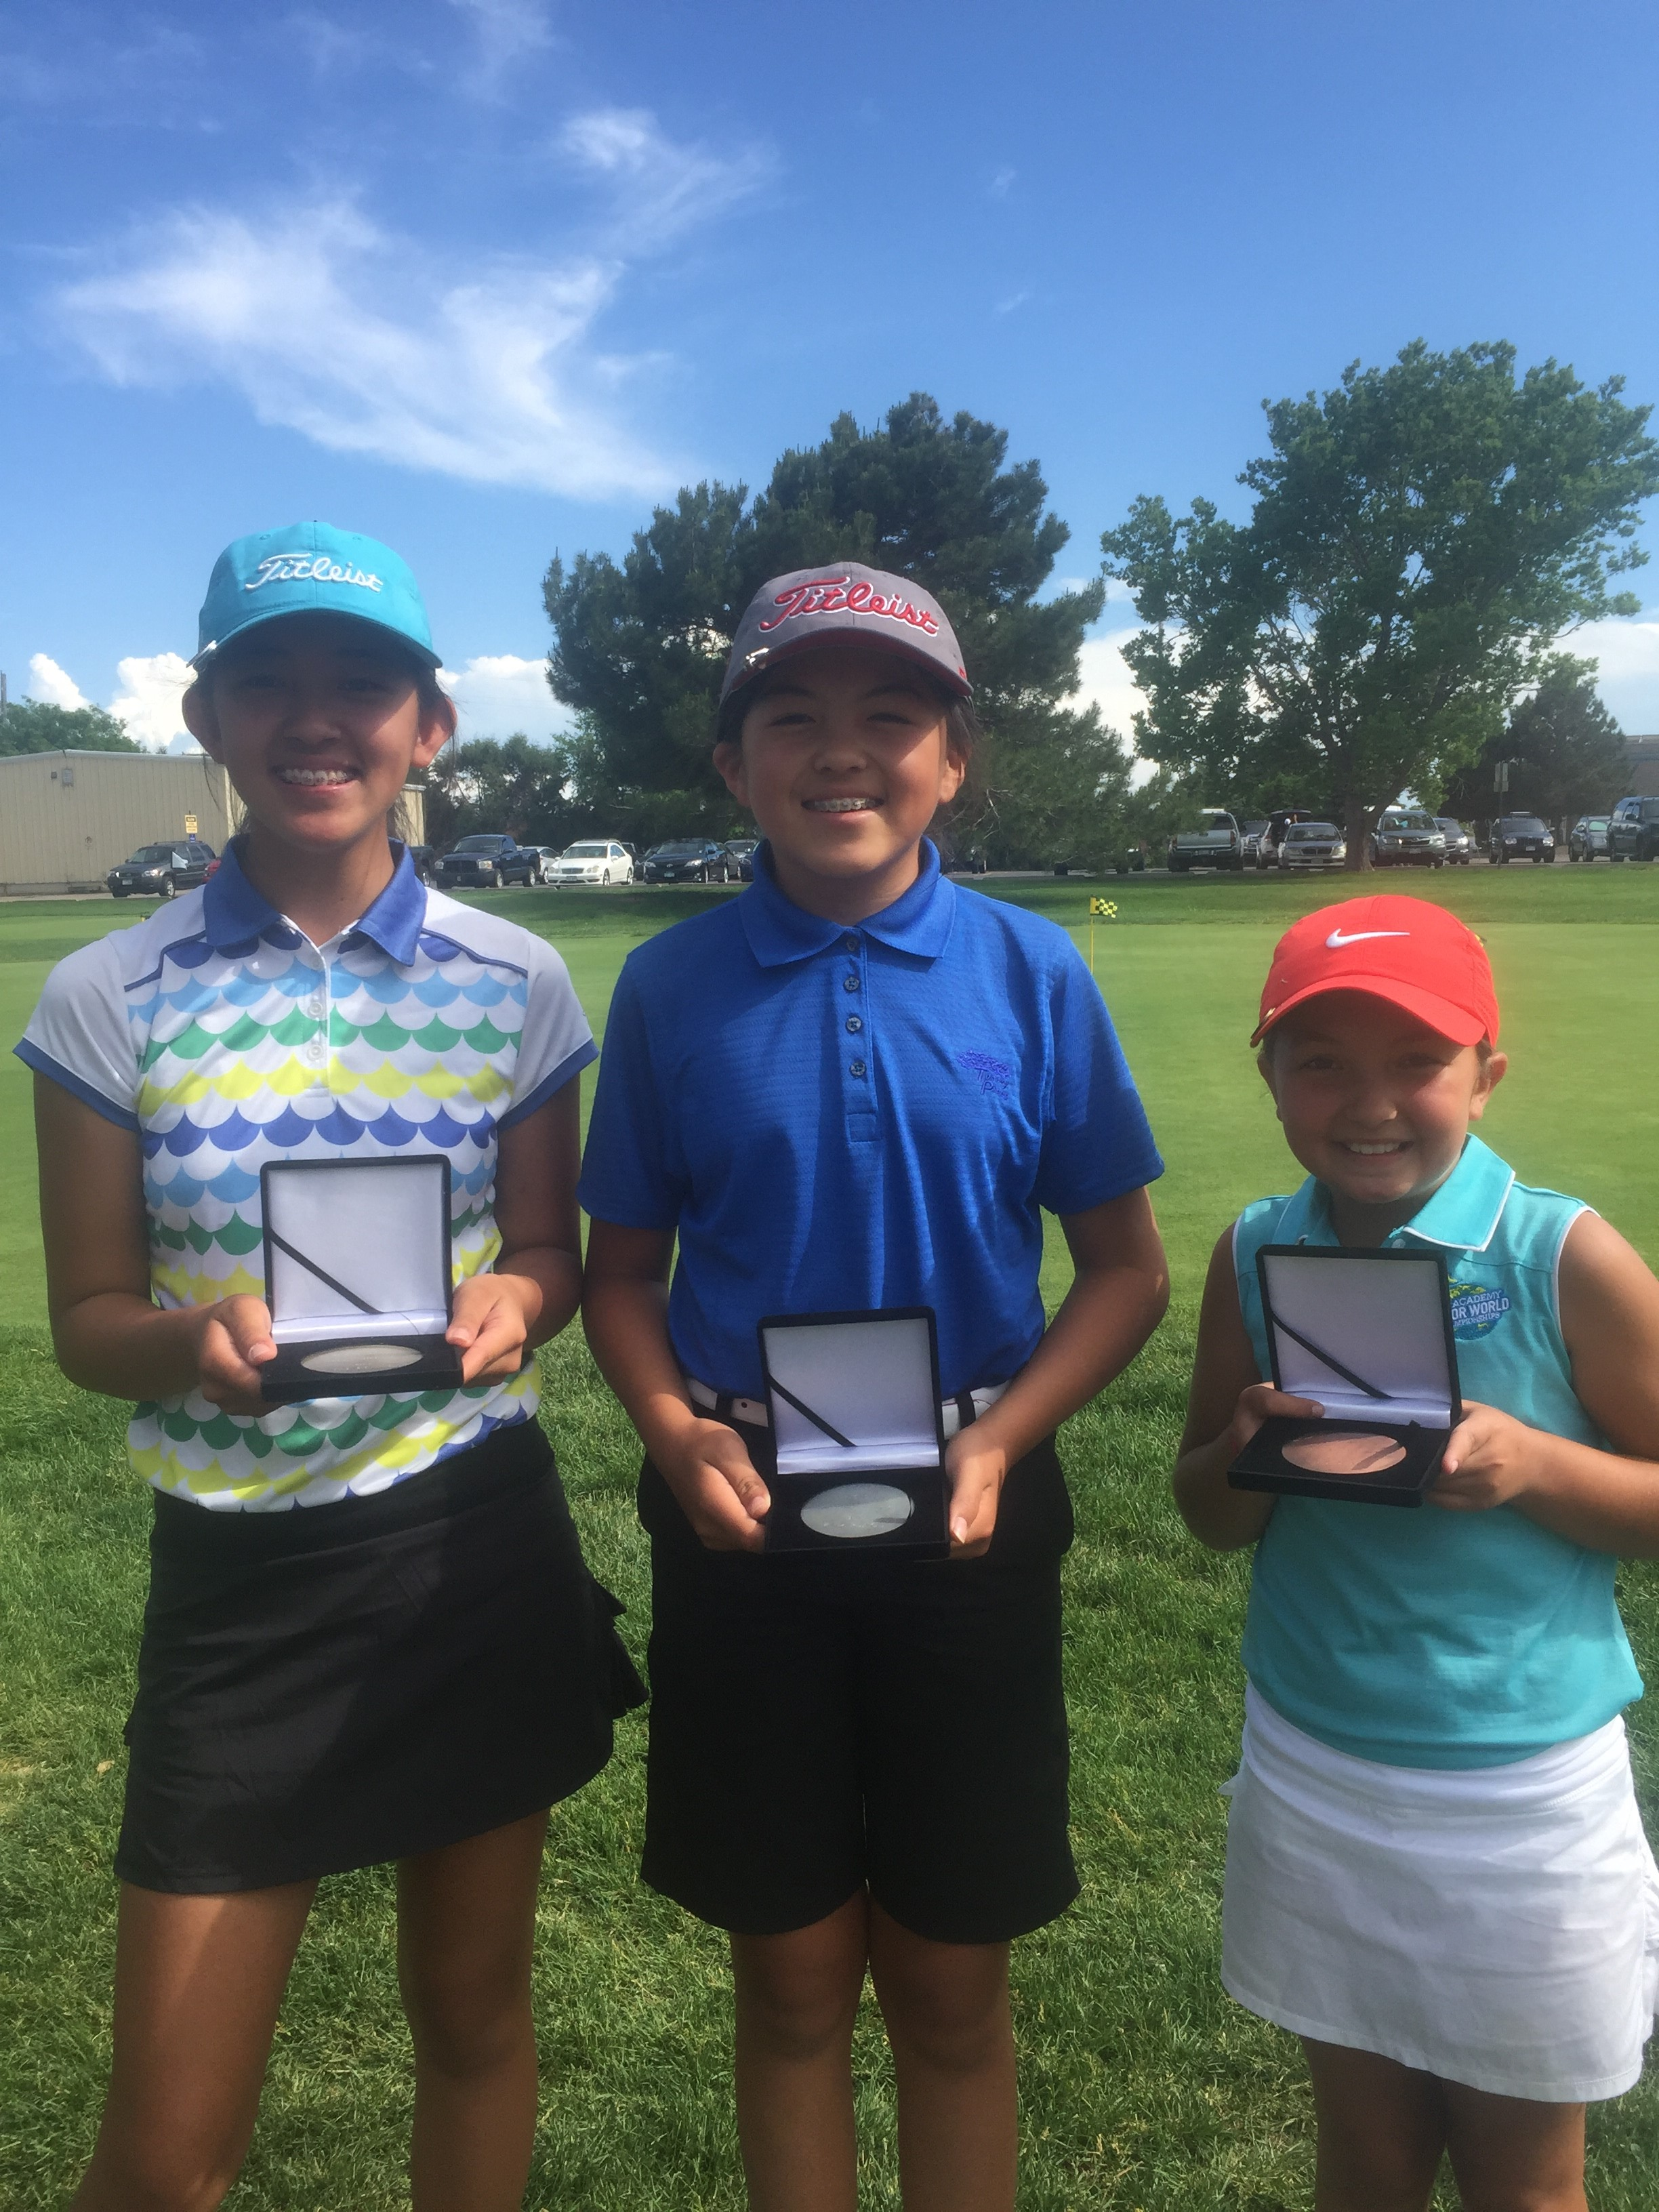 11-13 Series Event at Springhill Golf Course